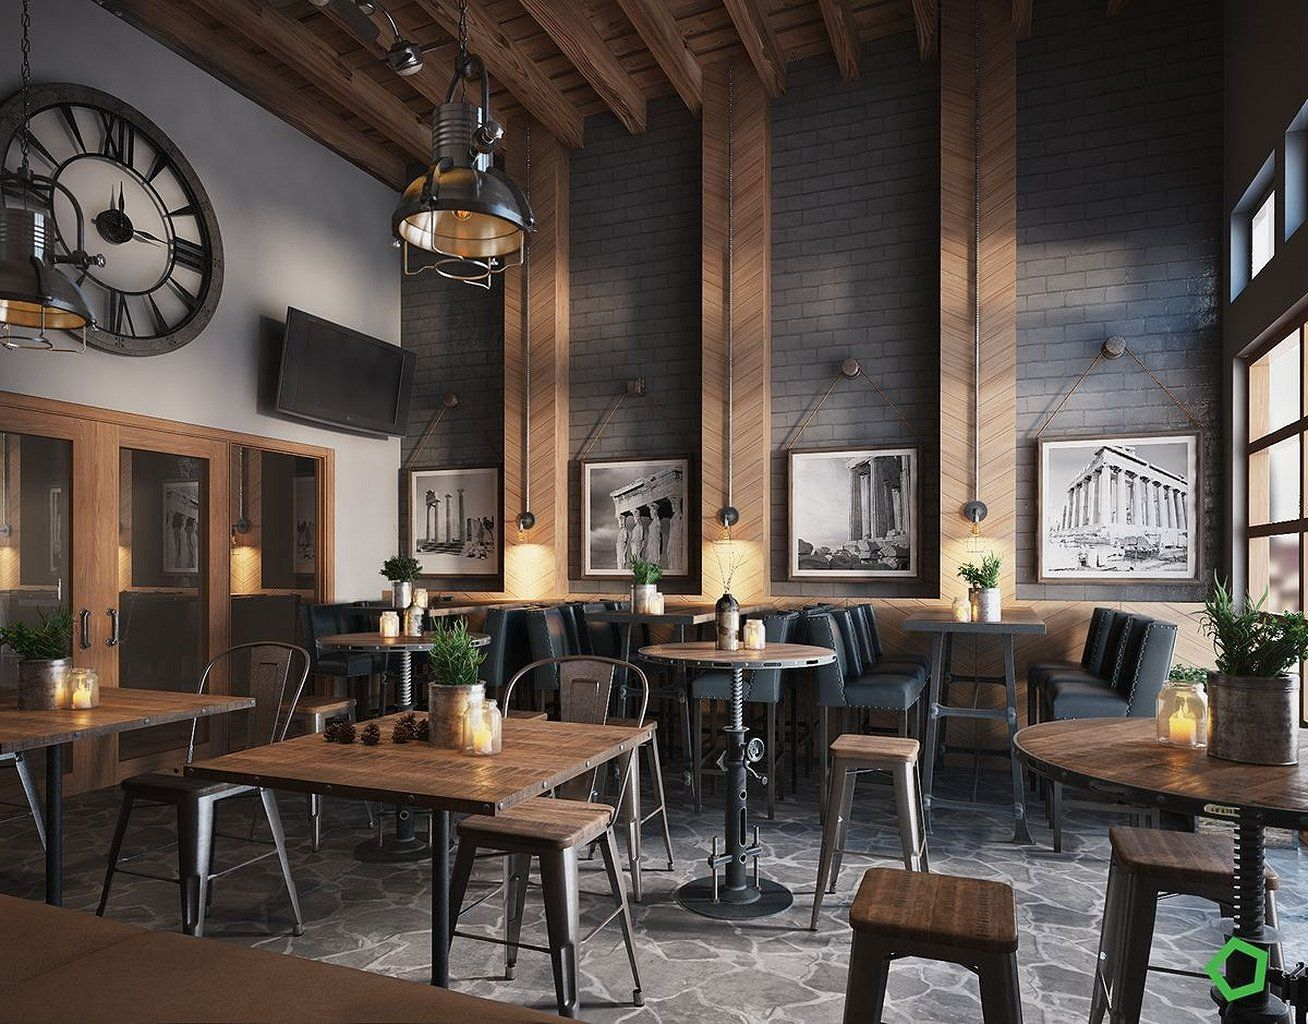 These Are The Bar Design Ideas You Want To Take Into Consideration When Choosing Your Home Dar Http Cafe Bar Design Cafe Interior Design Restaurant Decor